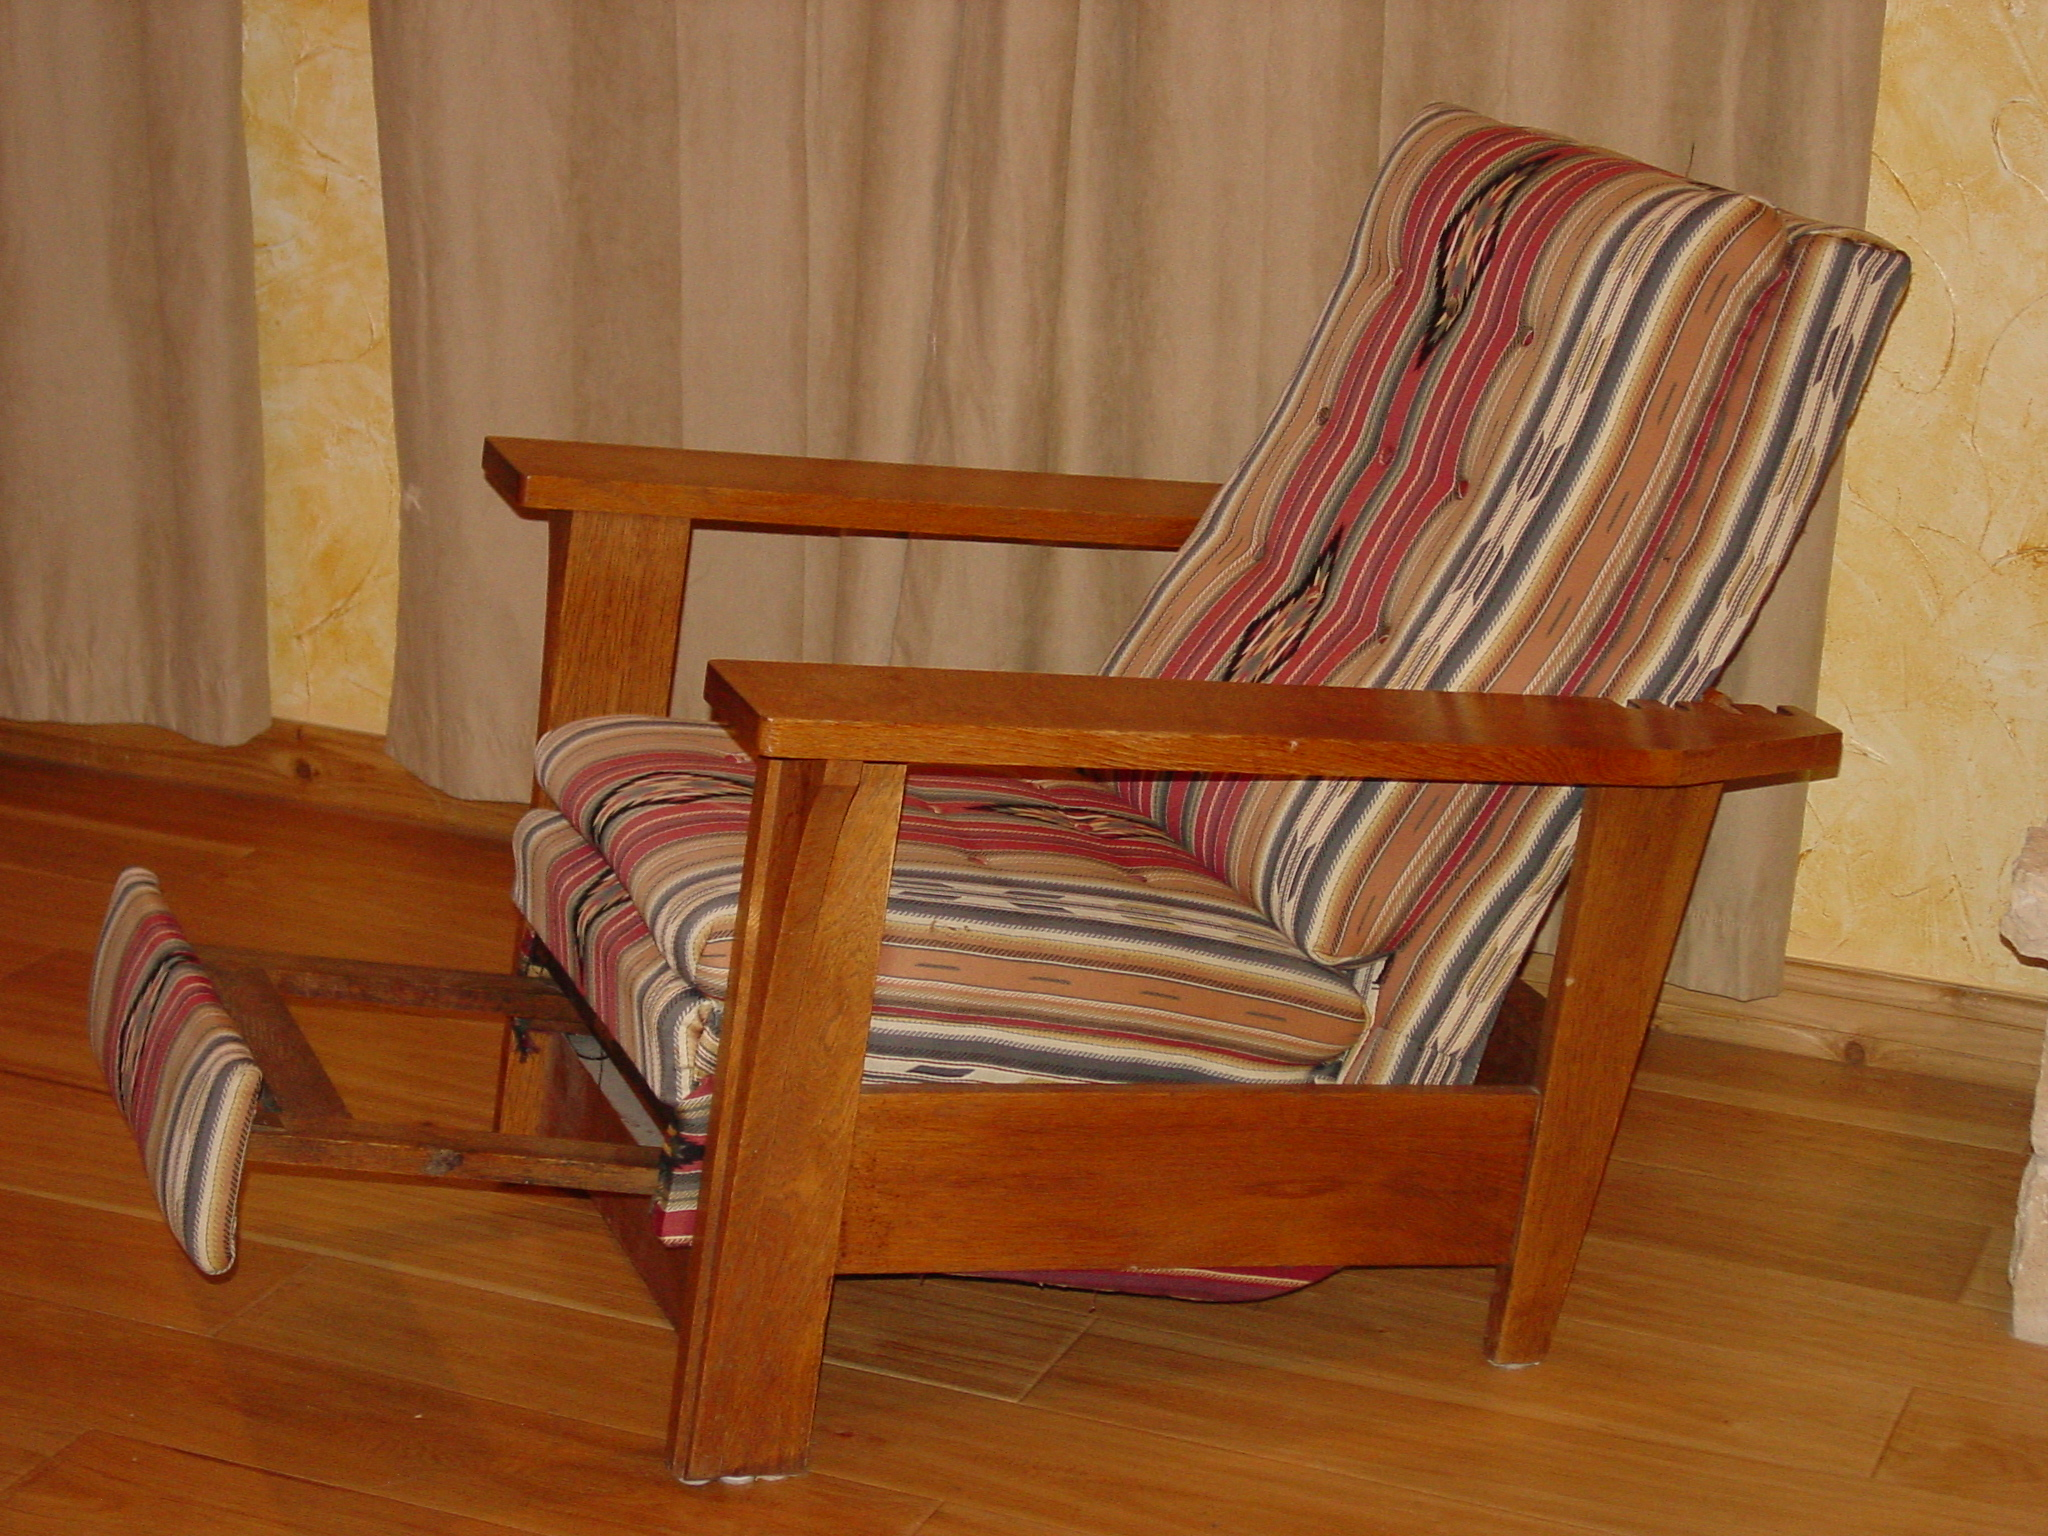 Fantastic Streit Morris Chair And Rocking Chair Antique Appraisal Gamerscity Chair Design For Home Gamerscityorg